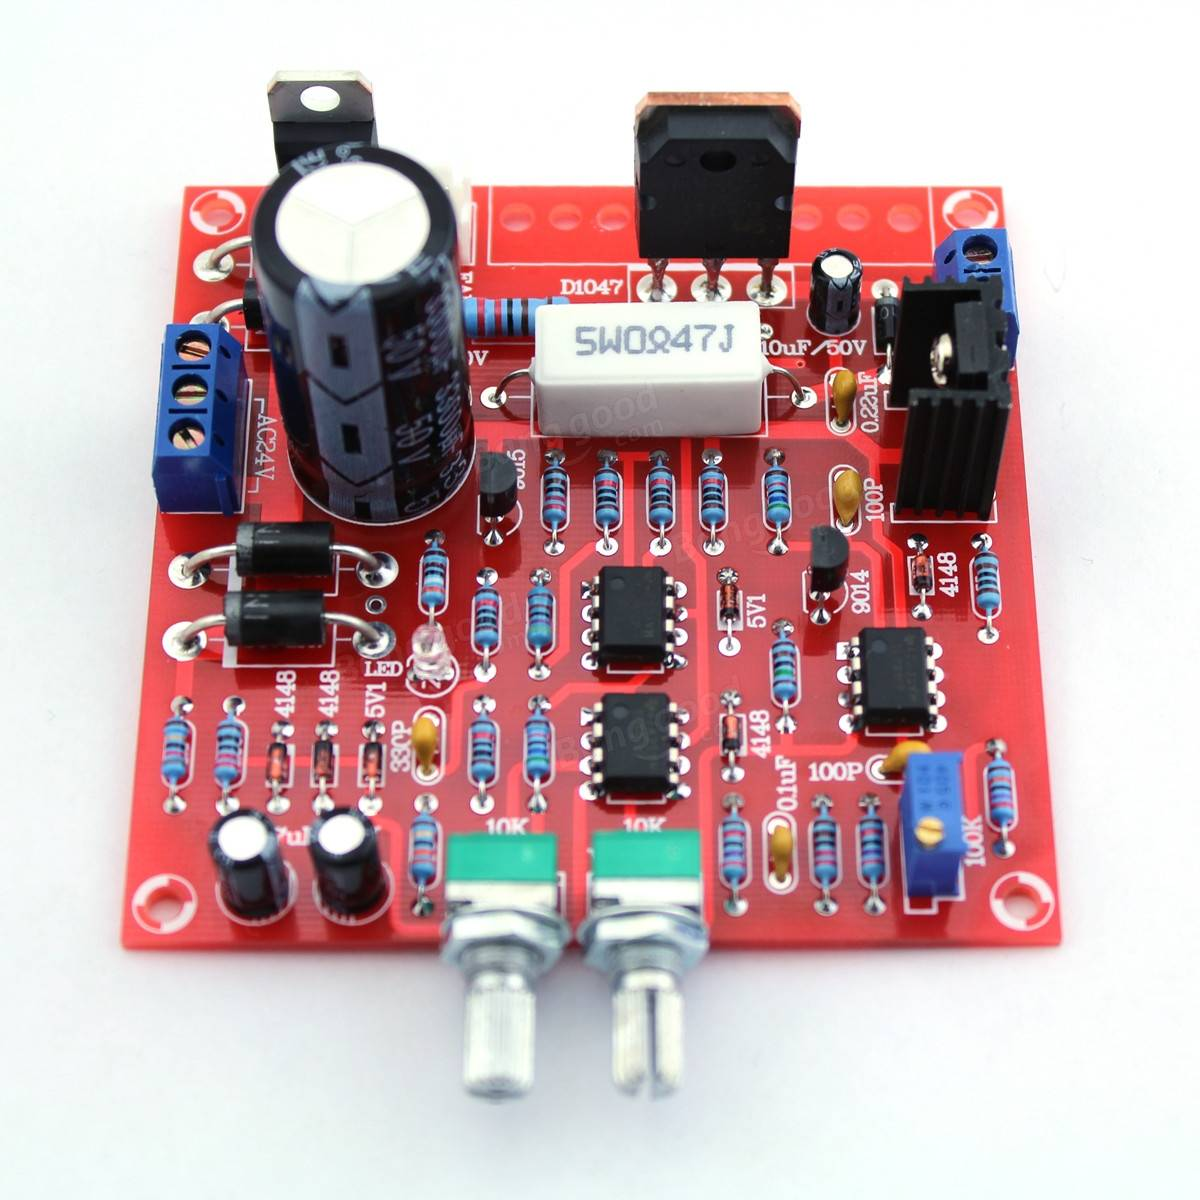 Ea4eoz An Amateur Radio Electronic Enthusiast Considerations About Adjustable Voltage Regulator 3 Ampere The Lm350k Has A Fixed Current Limit Around 2 Amps But Usually That Is Just Too Much For Prototype Many Times When Something Went